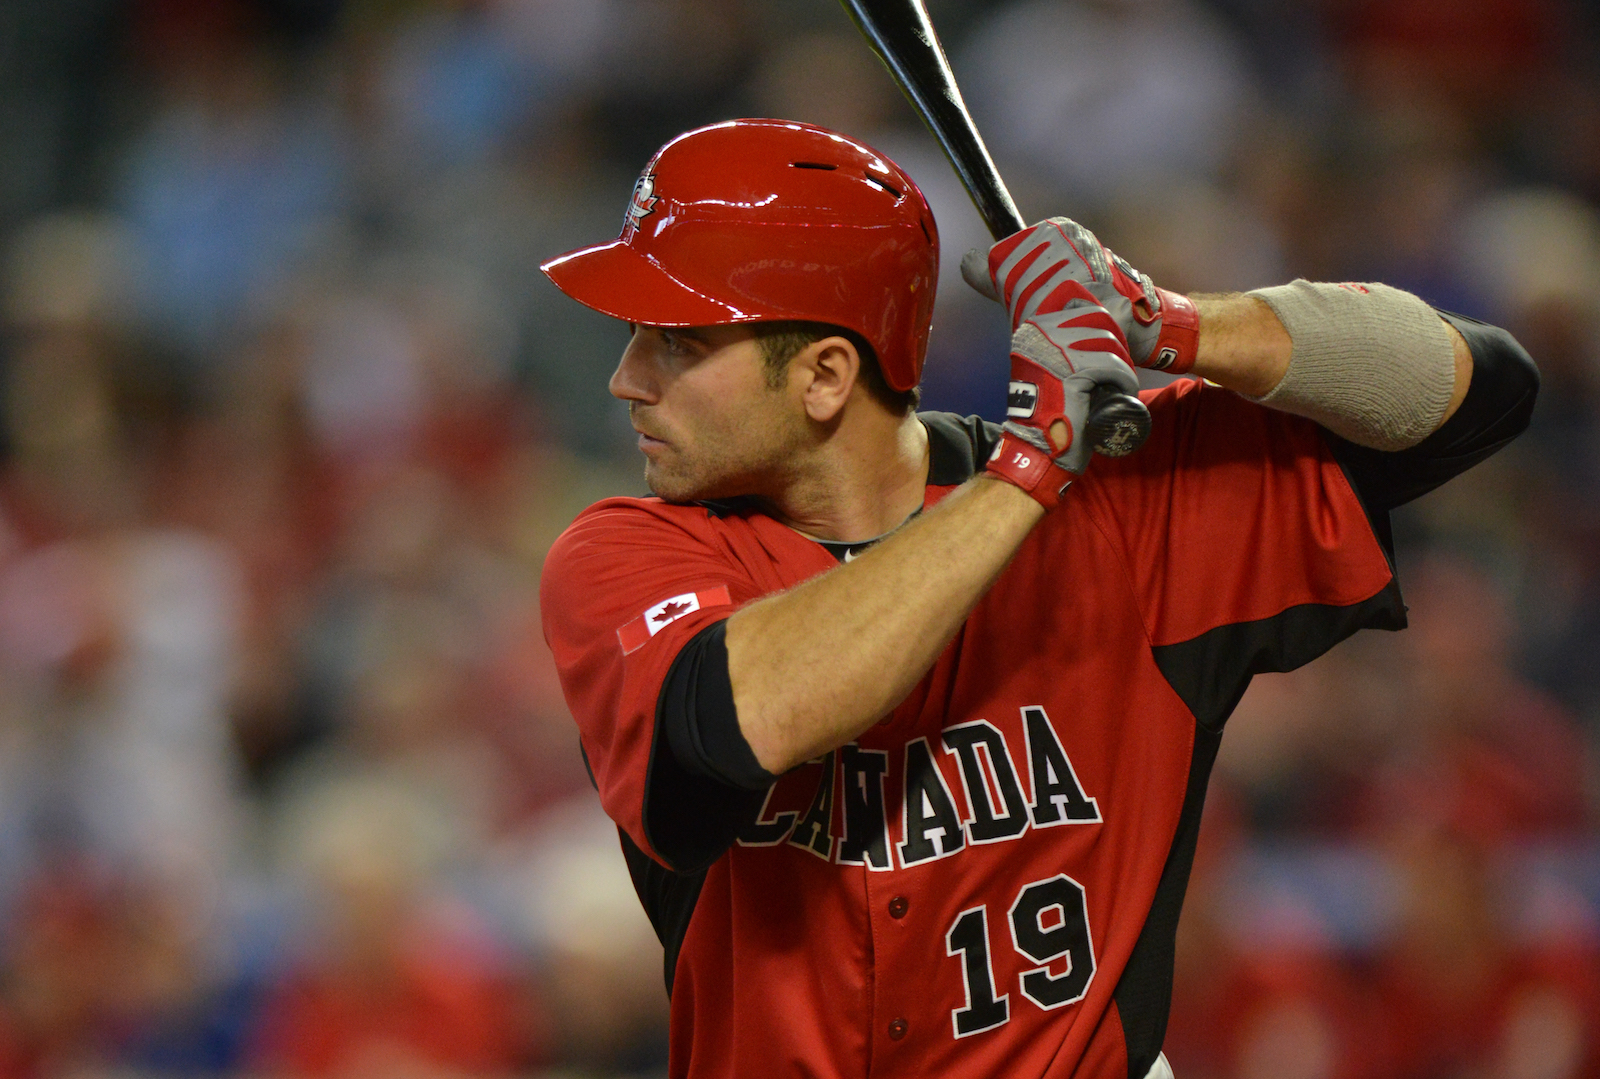 Joey Votto wins Canadian Baseball Hall of Fame's Tip O'Neill Award for sixth time